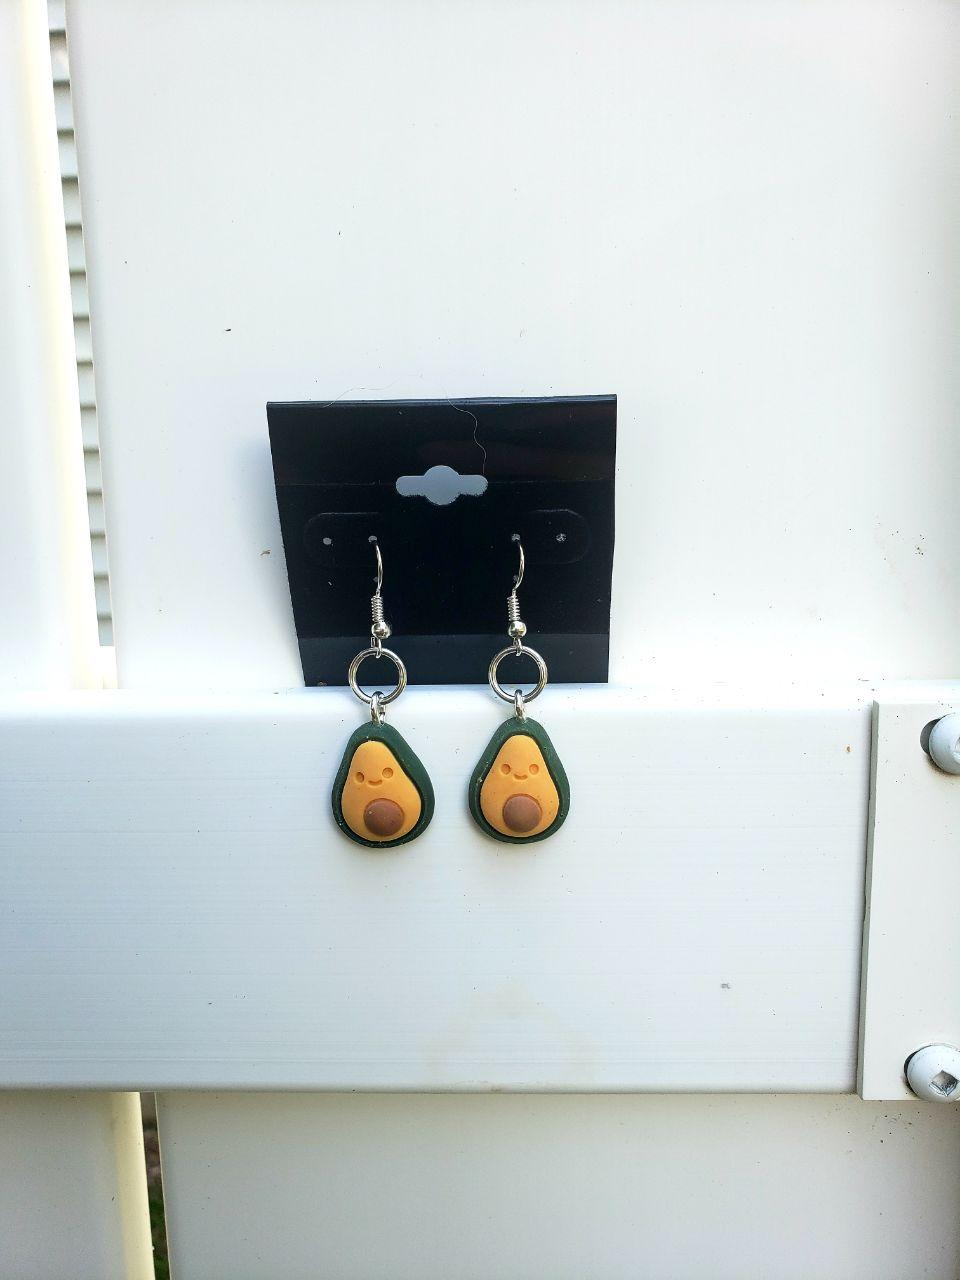 Fruit Jewelry, Earrings, Earrings, Resin, Wearable - Sciggles